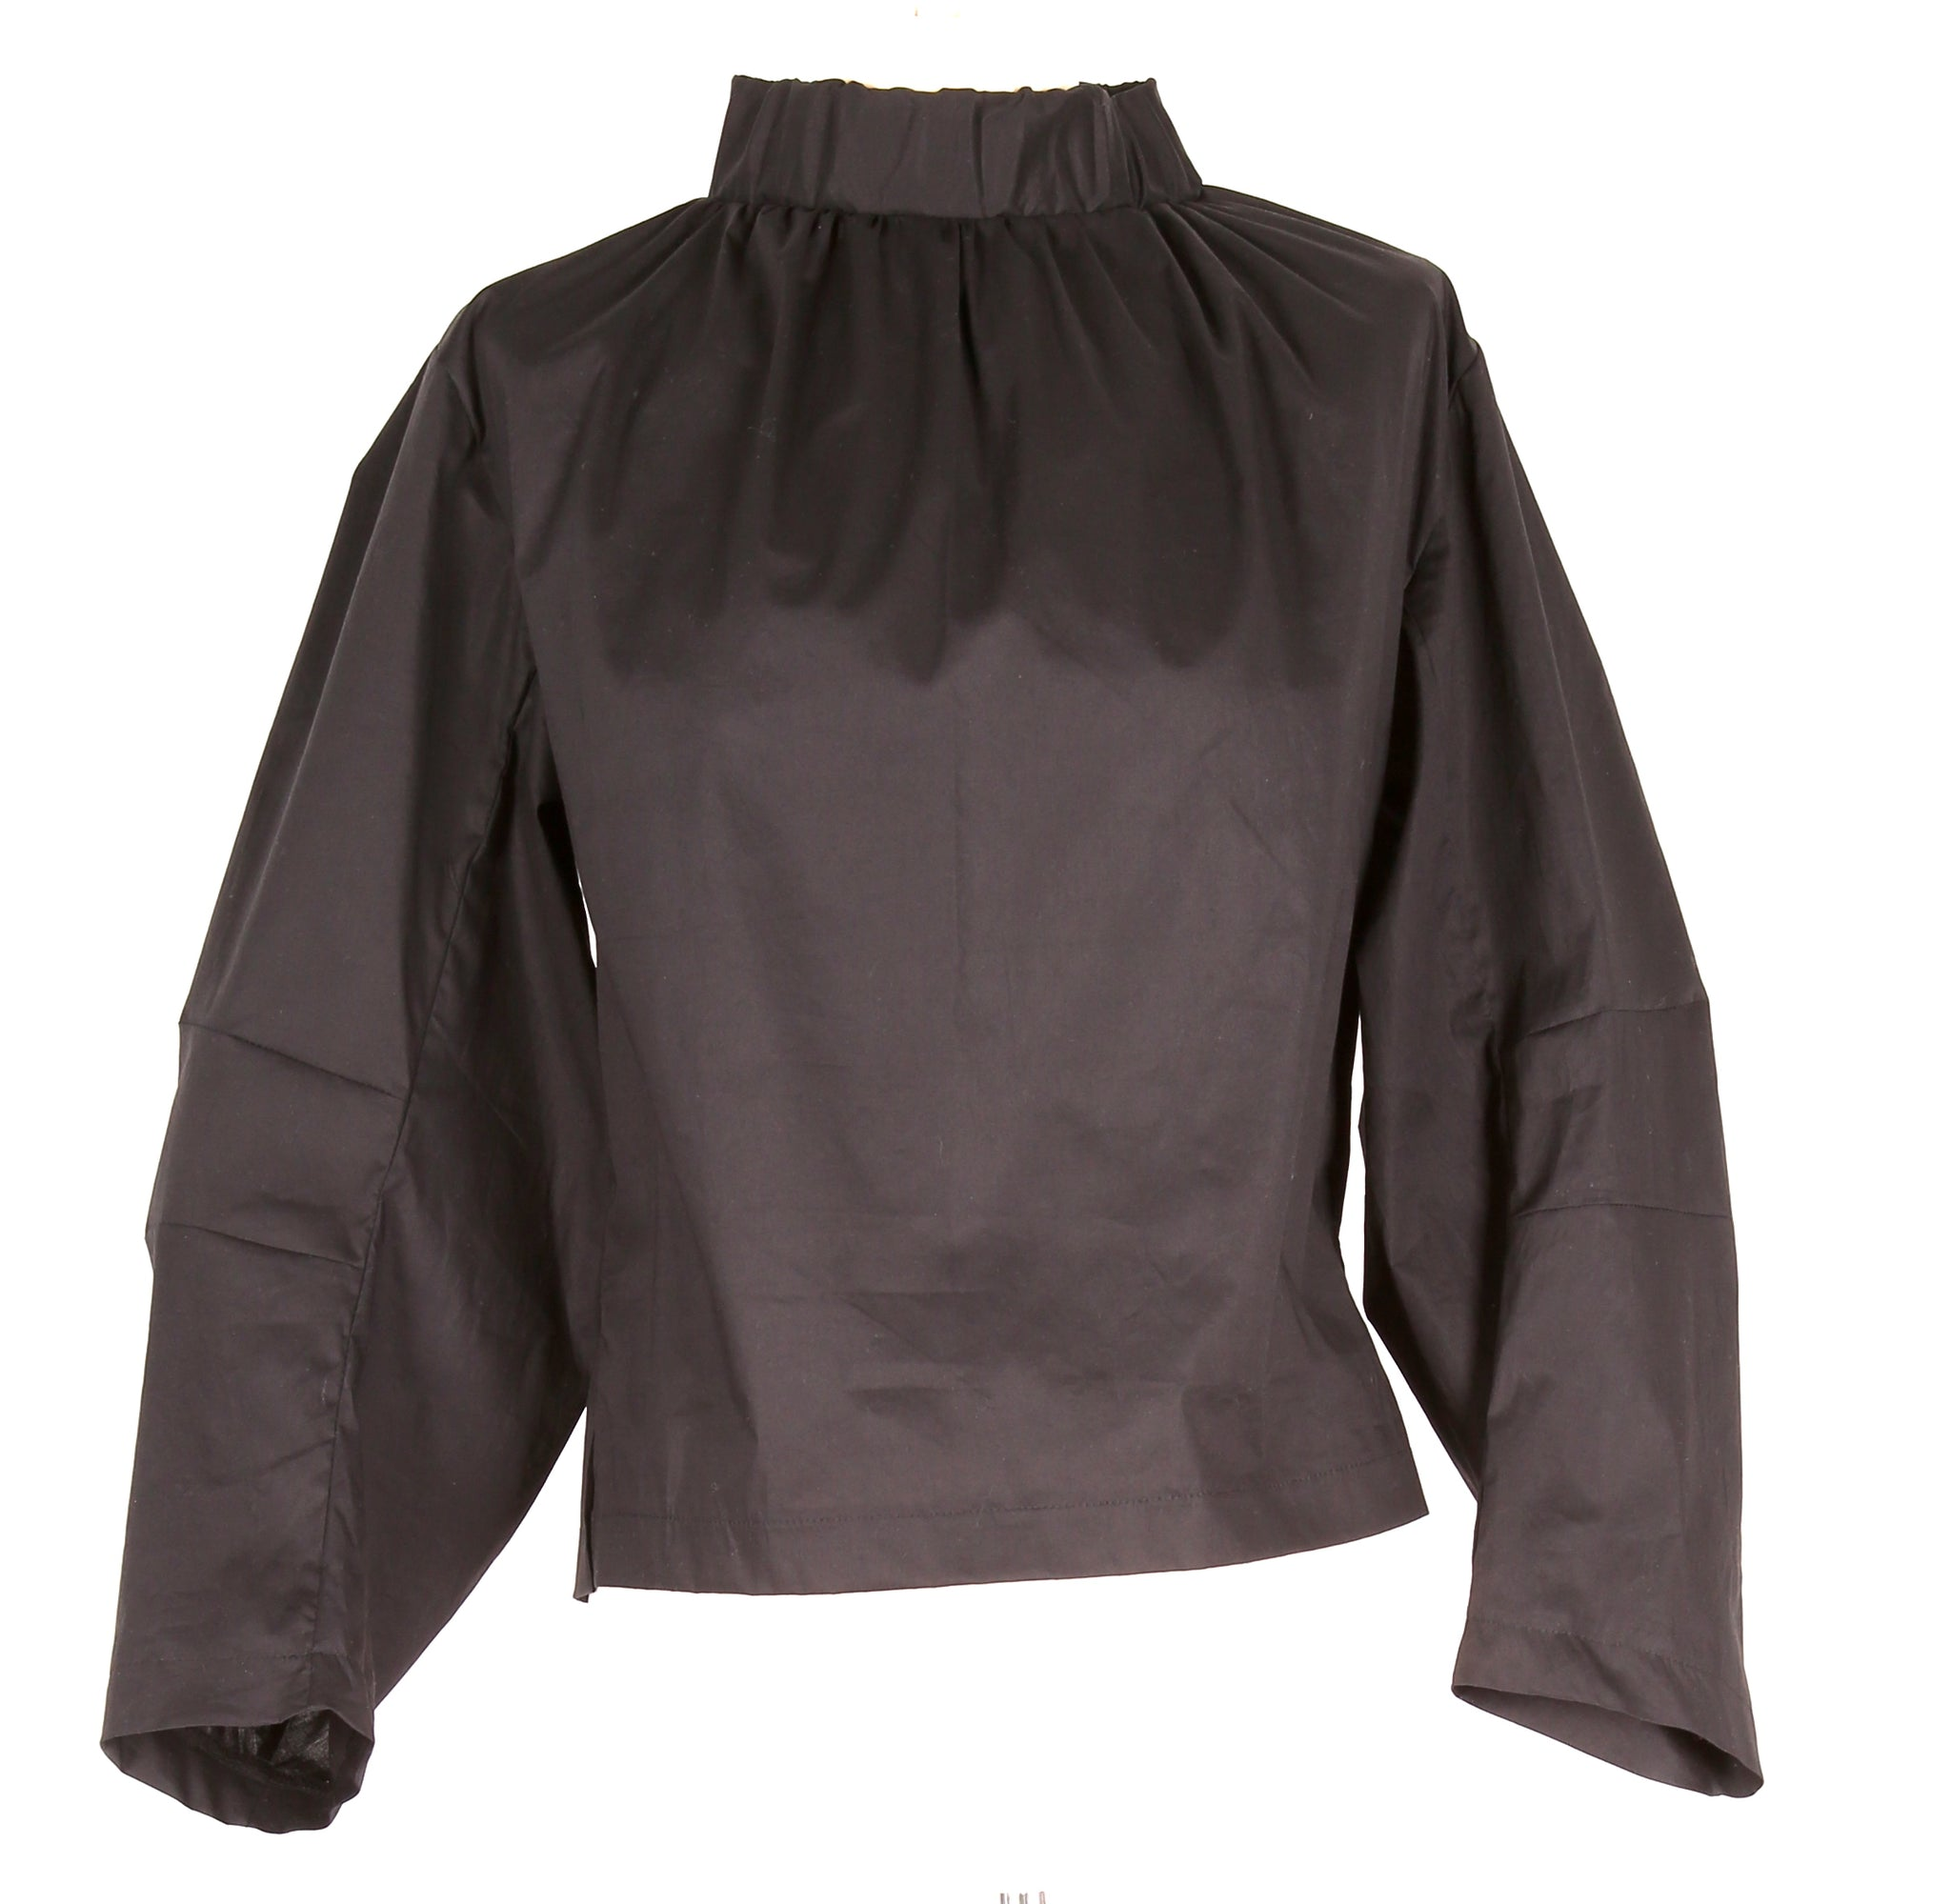 Black Blouse With a Gathering